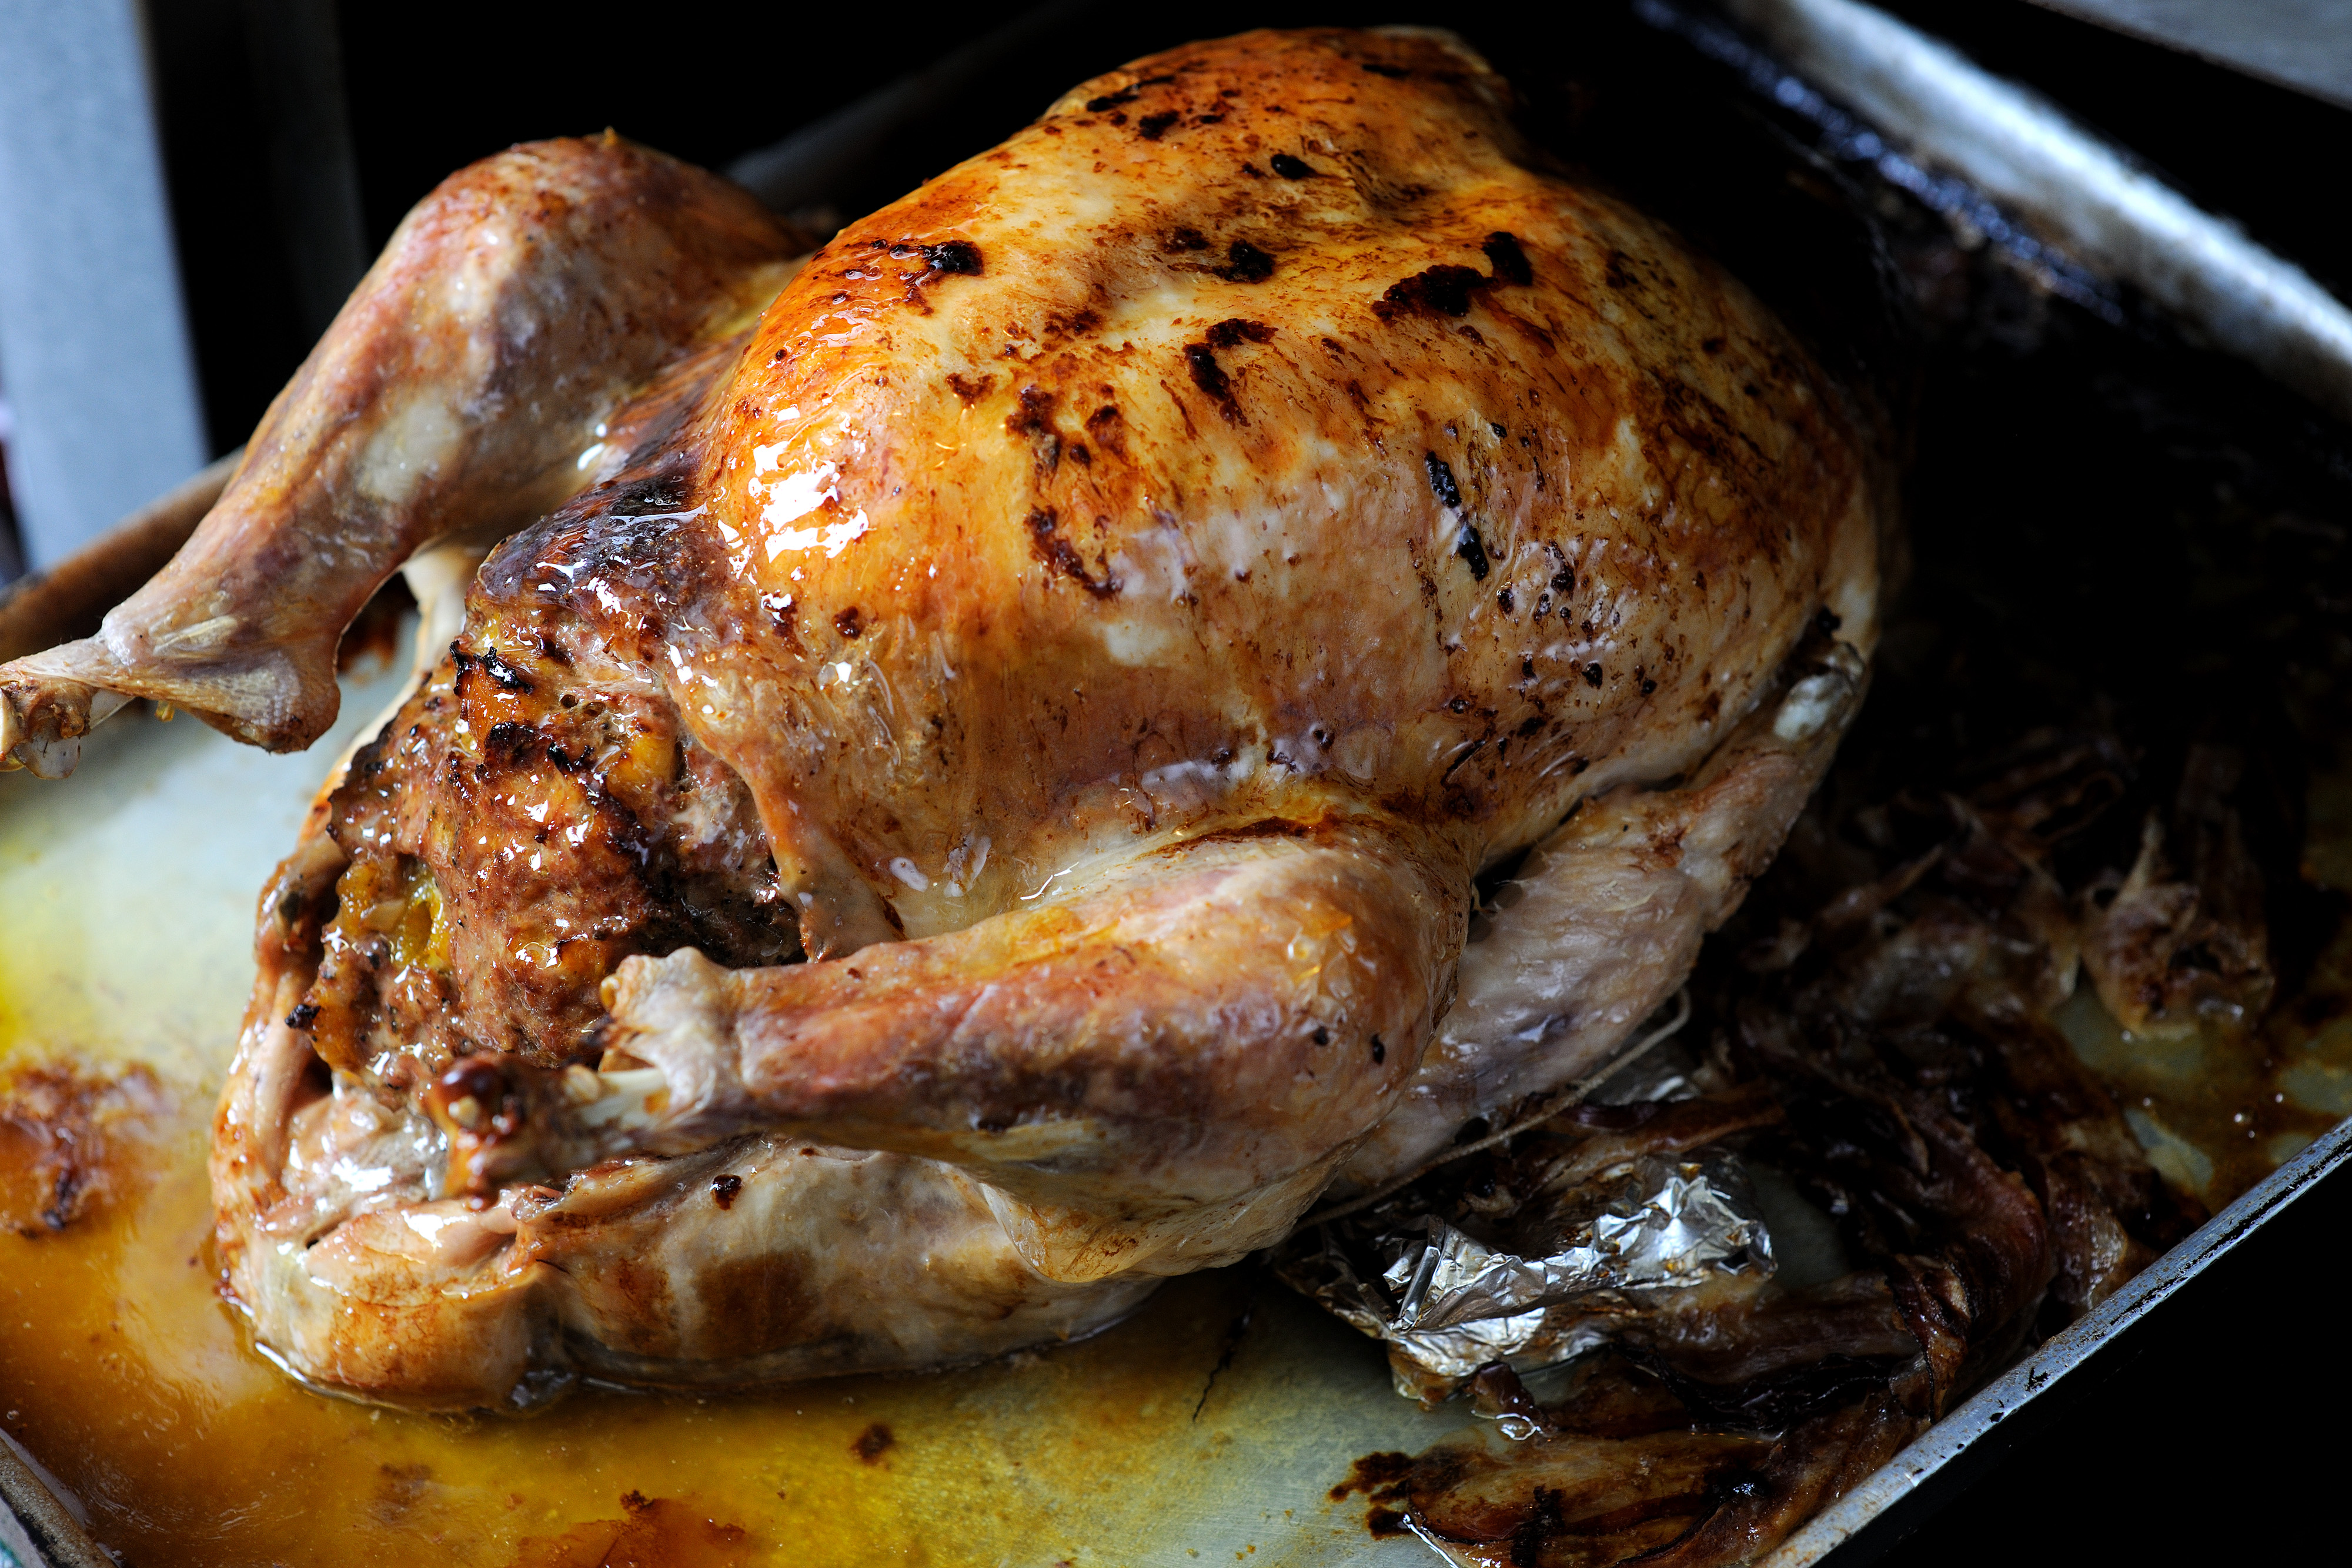 How to keep turkey crown moist when cooking